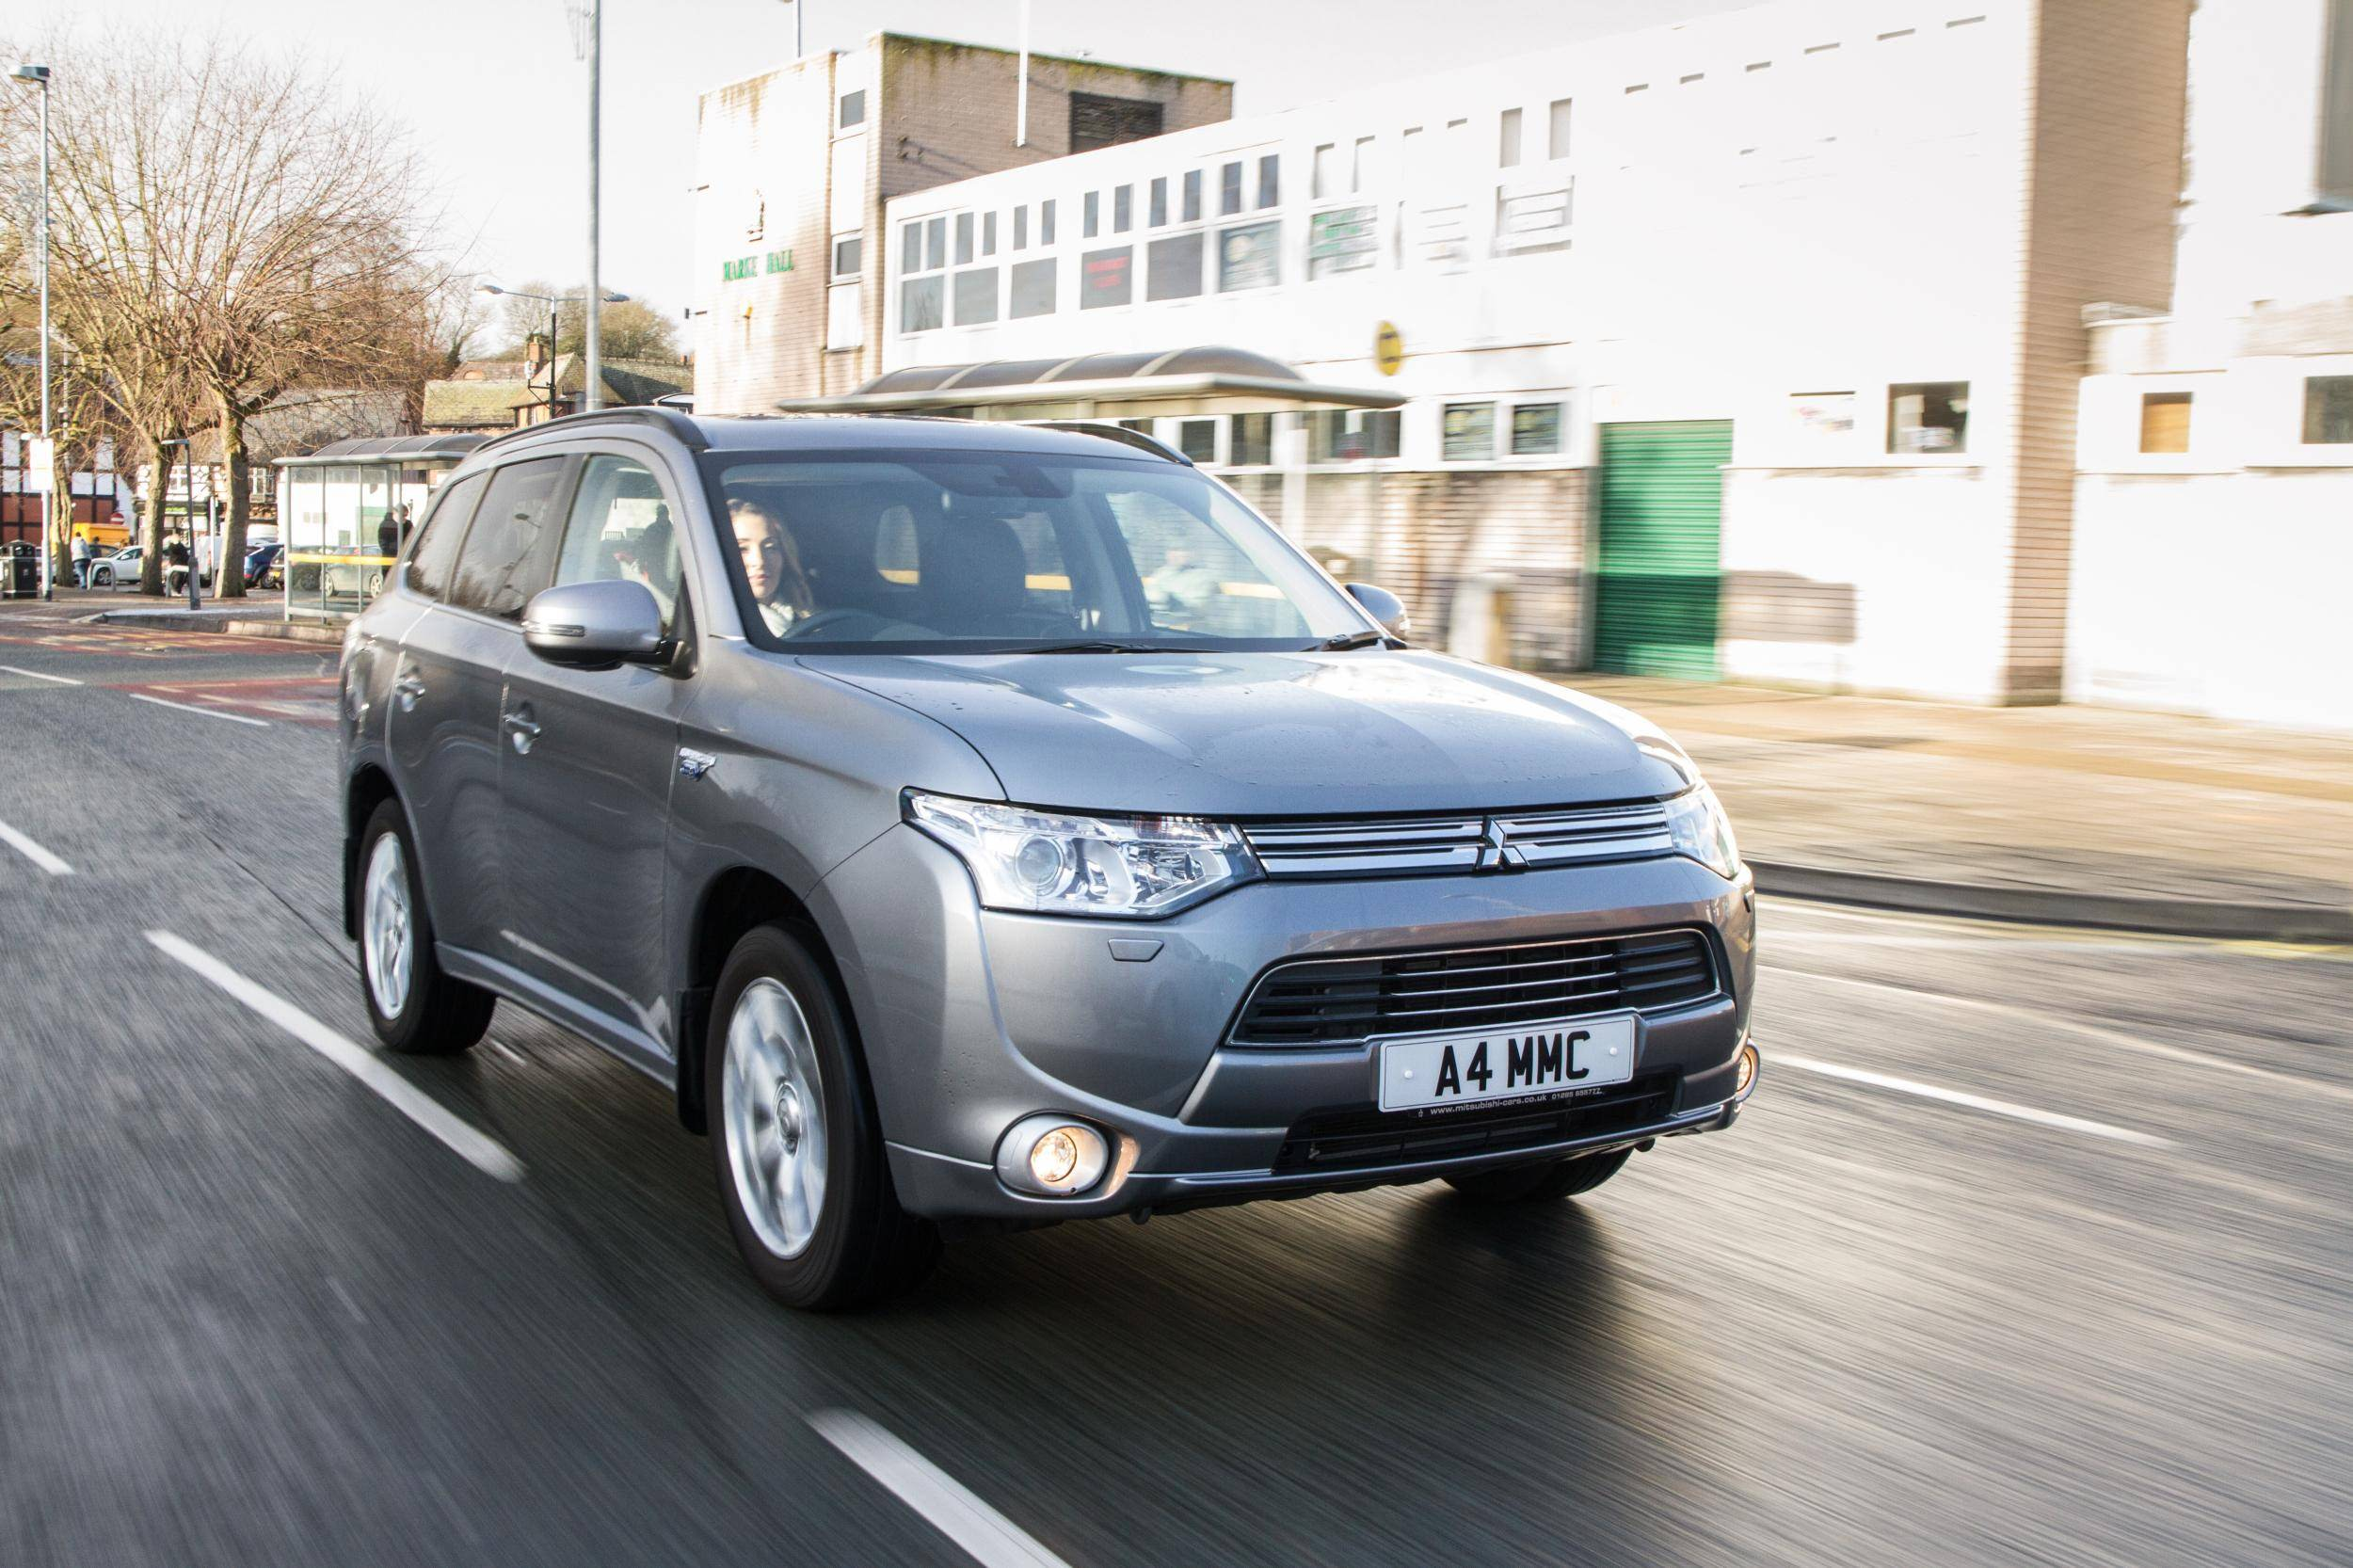 Woman Driving a Grey Hybrid SUV Mitsubishi PHEV down a road